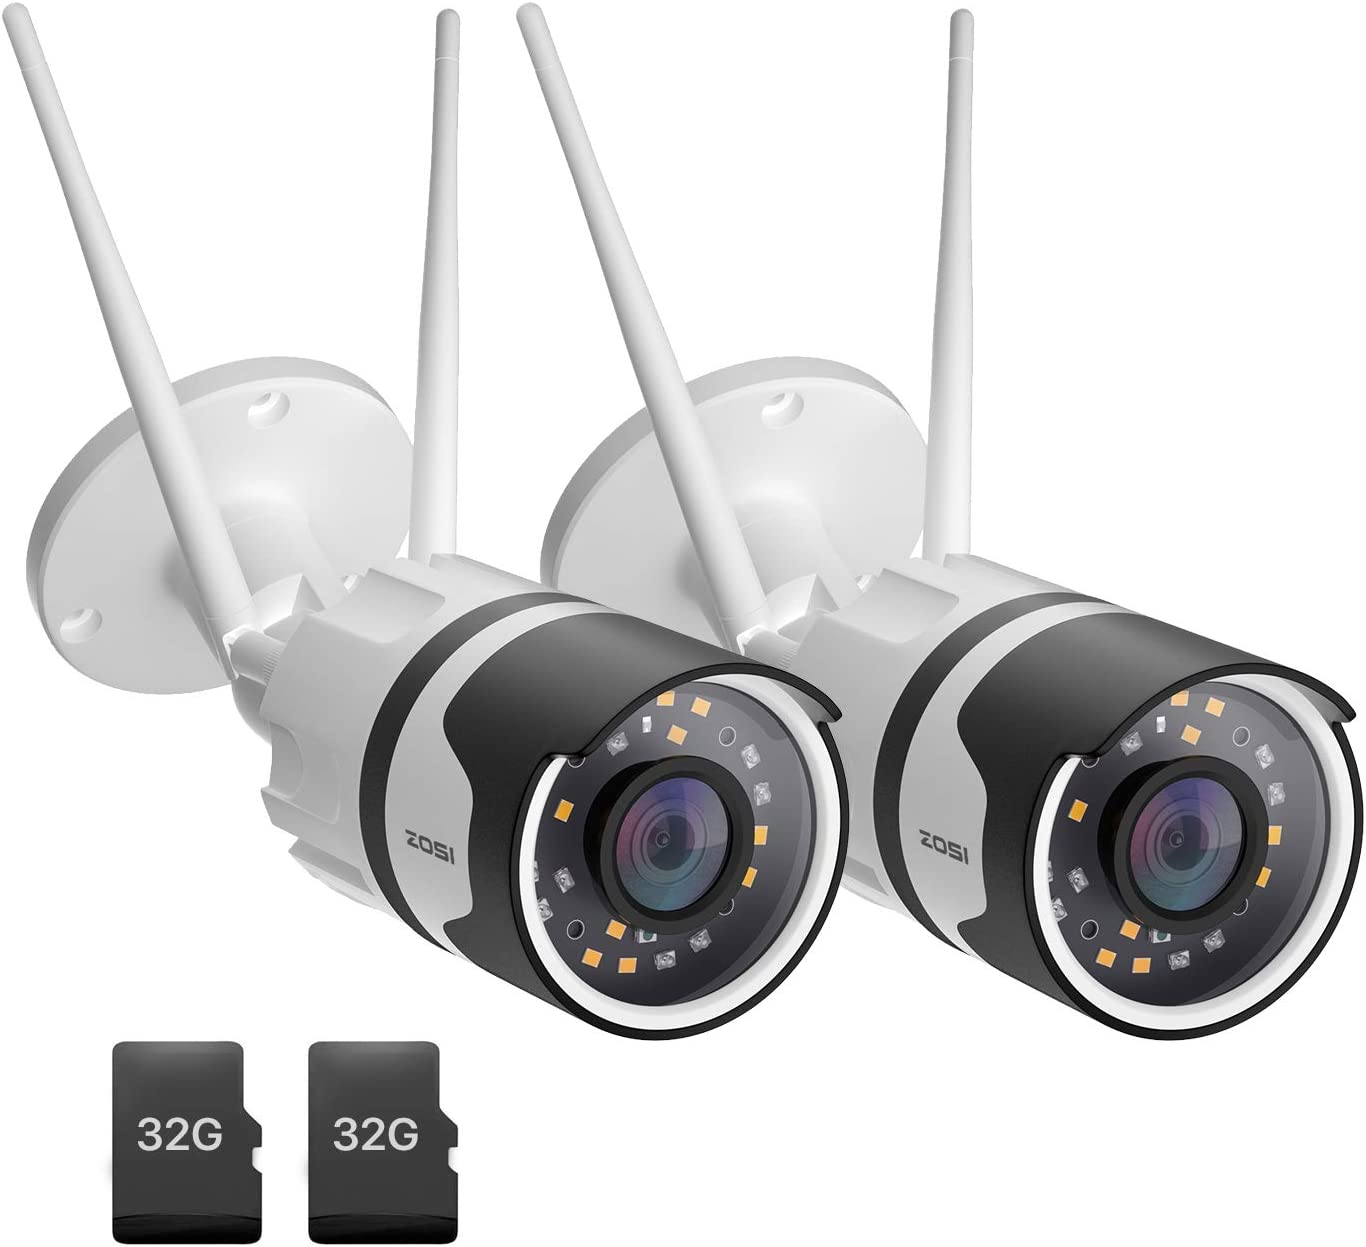 ZOSI 2pack C190 H.265+ 1080P Wireless Outdoor Bargain sale Camera wi Security Weekly update